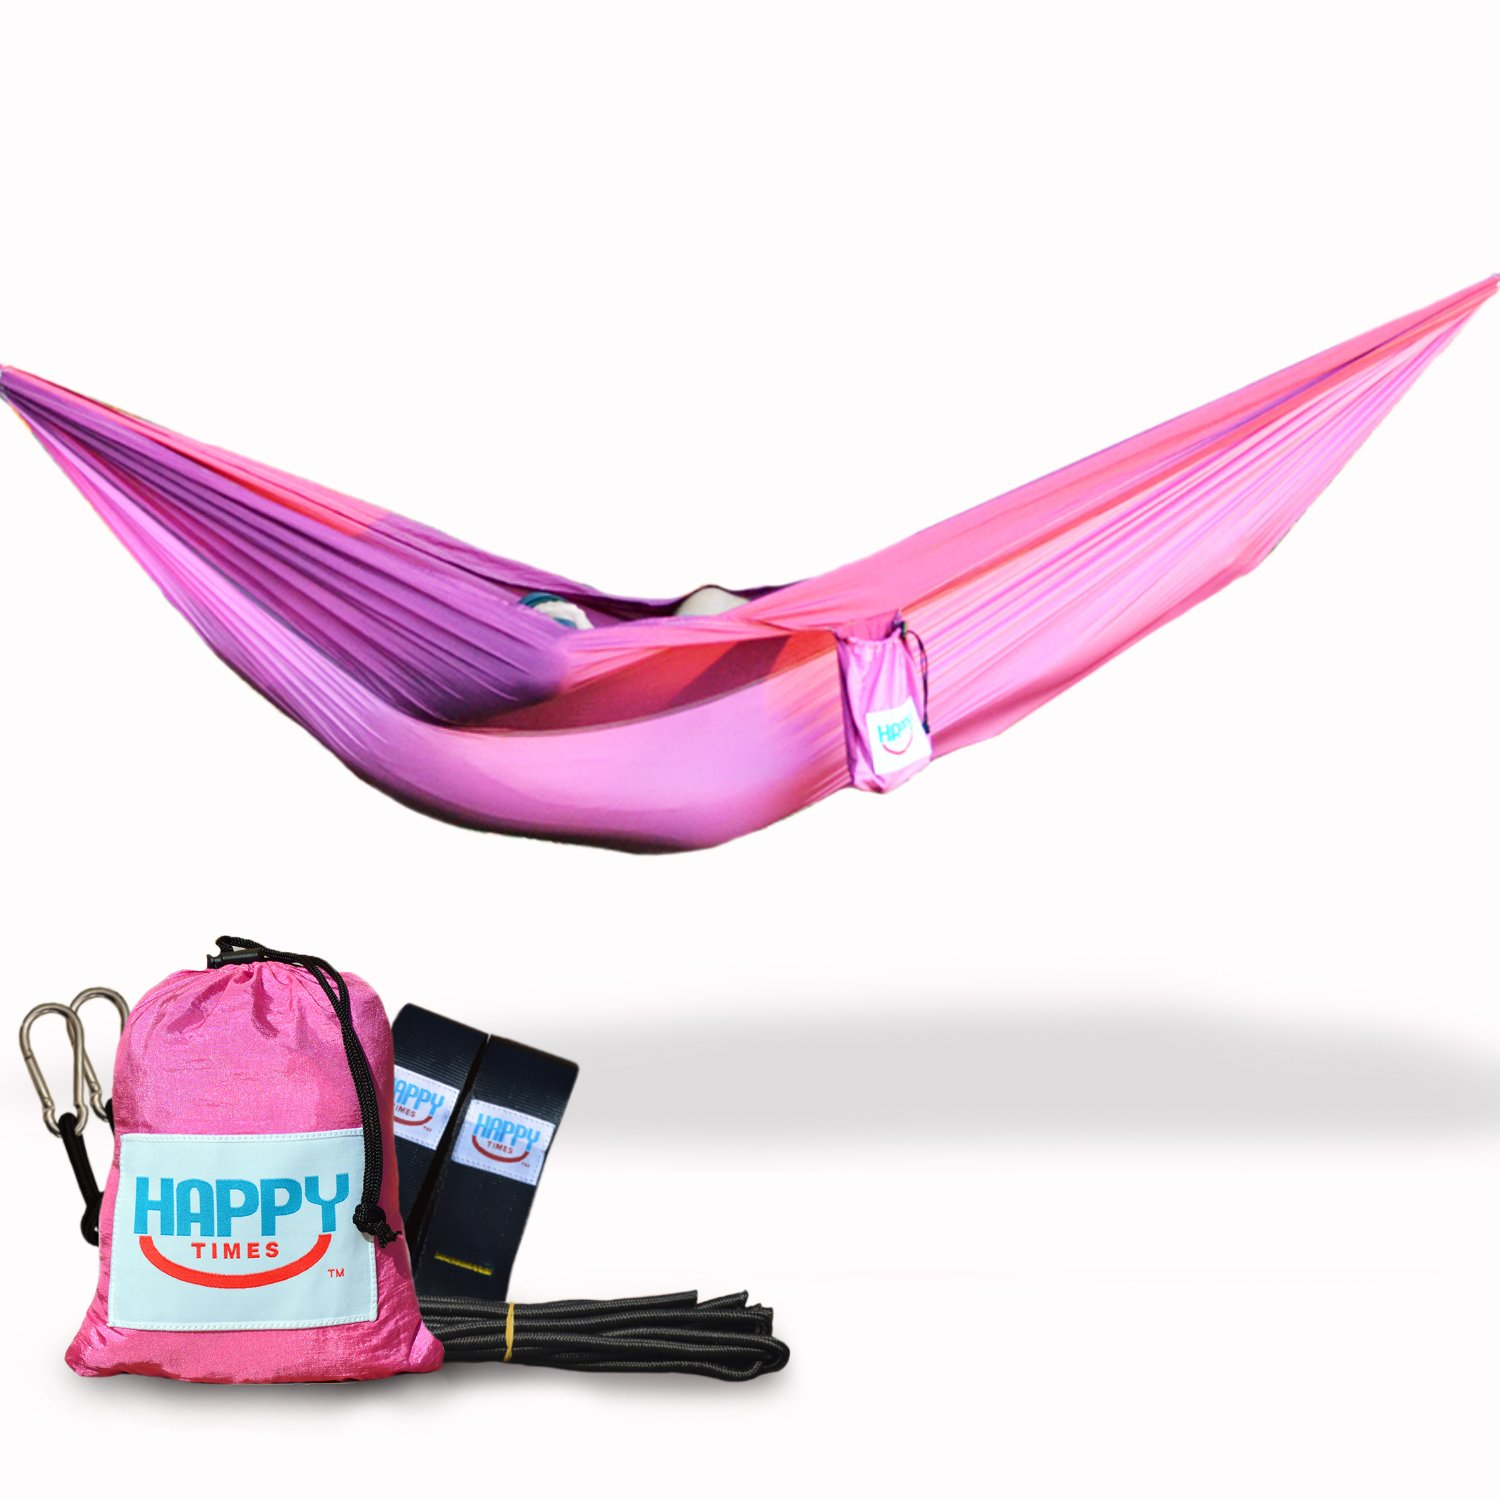 The Happy Times Hammock Shop travel product recommended by Katie Marshall on Lifney.